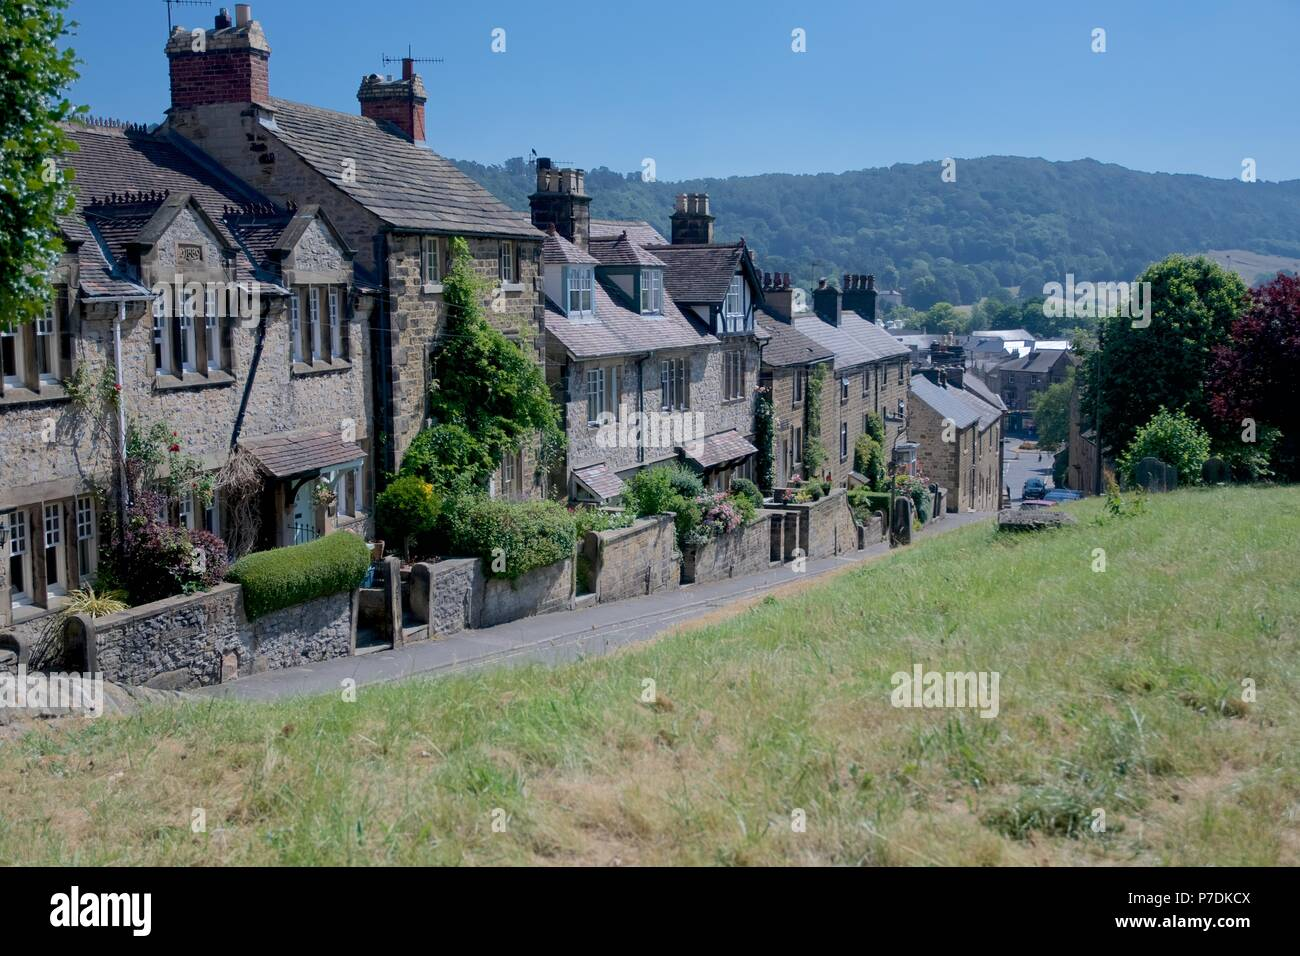 Houses in Bakewell,  Derbyshire - Stock Image